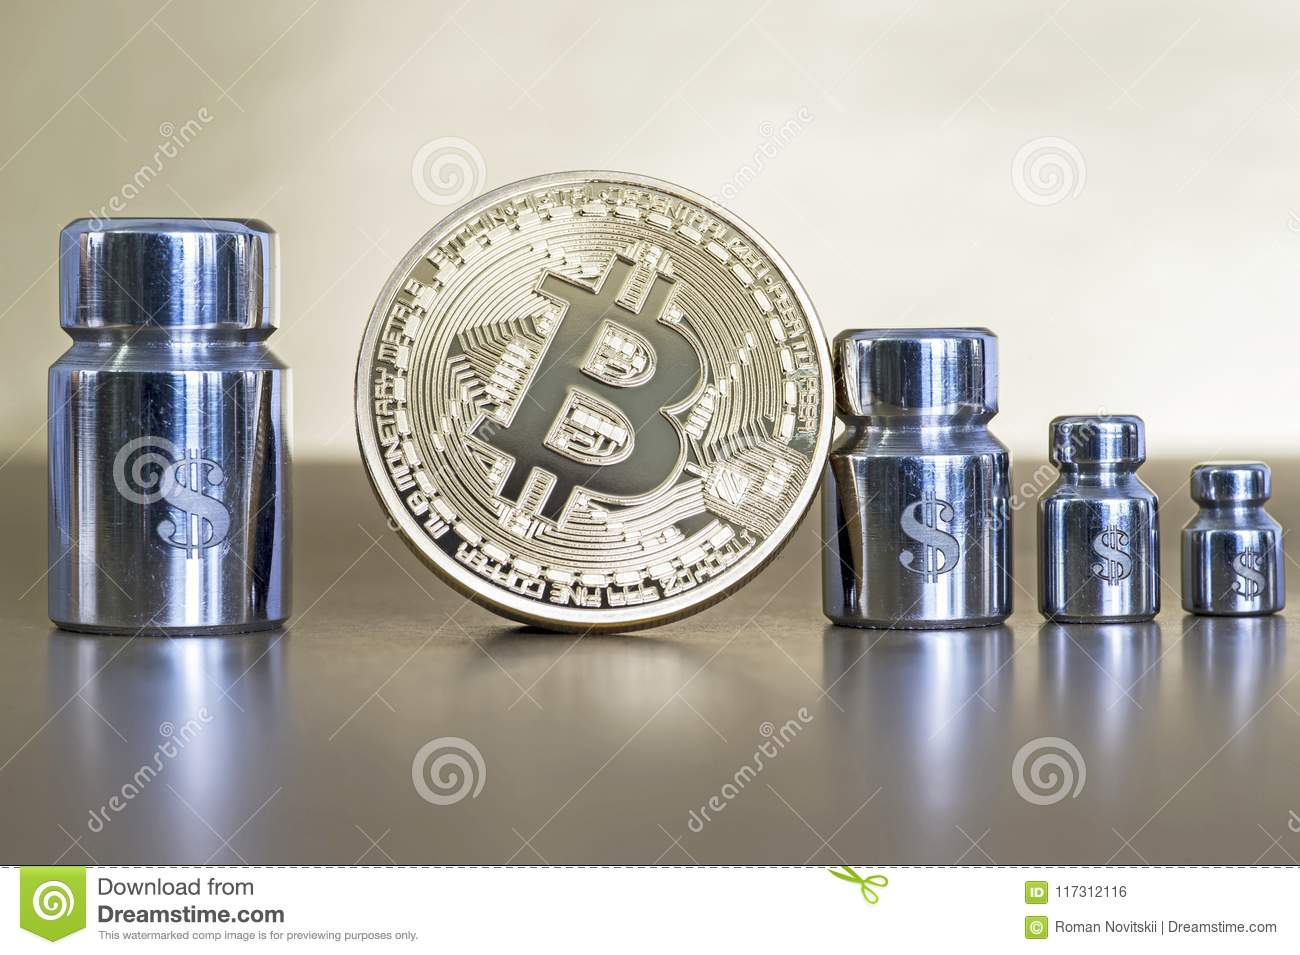 Bitcoin With Weights And Engraved With Symbols Of Dollar Showing